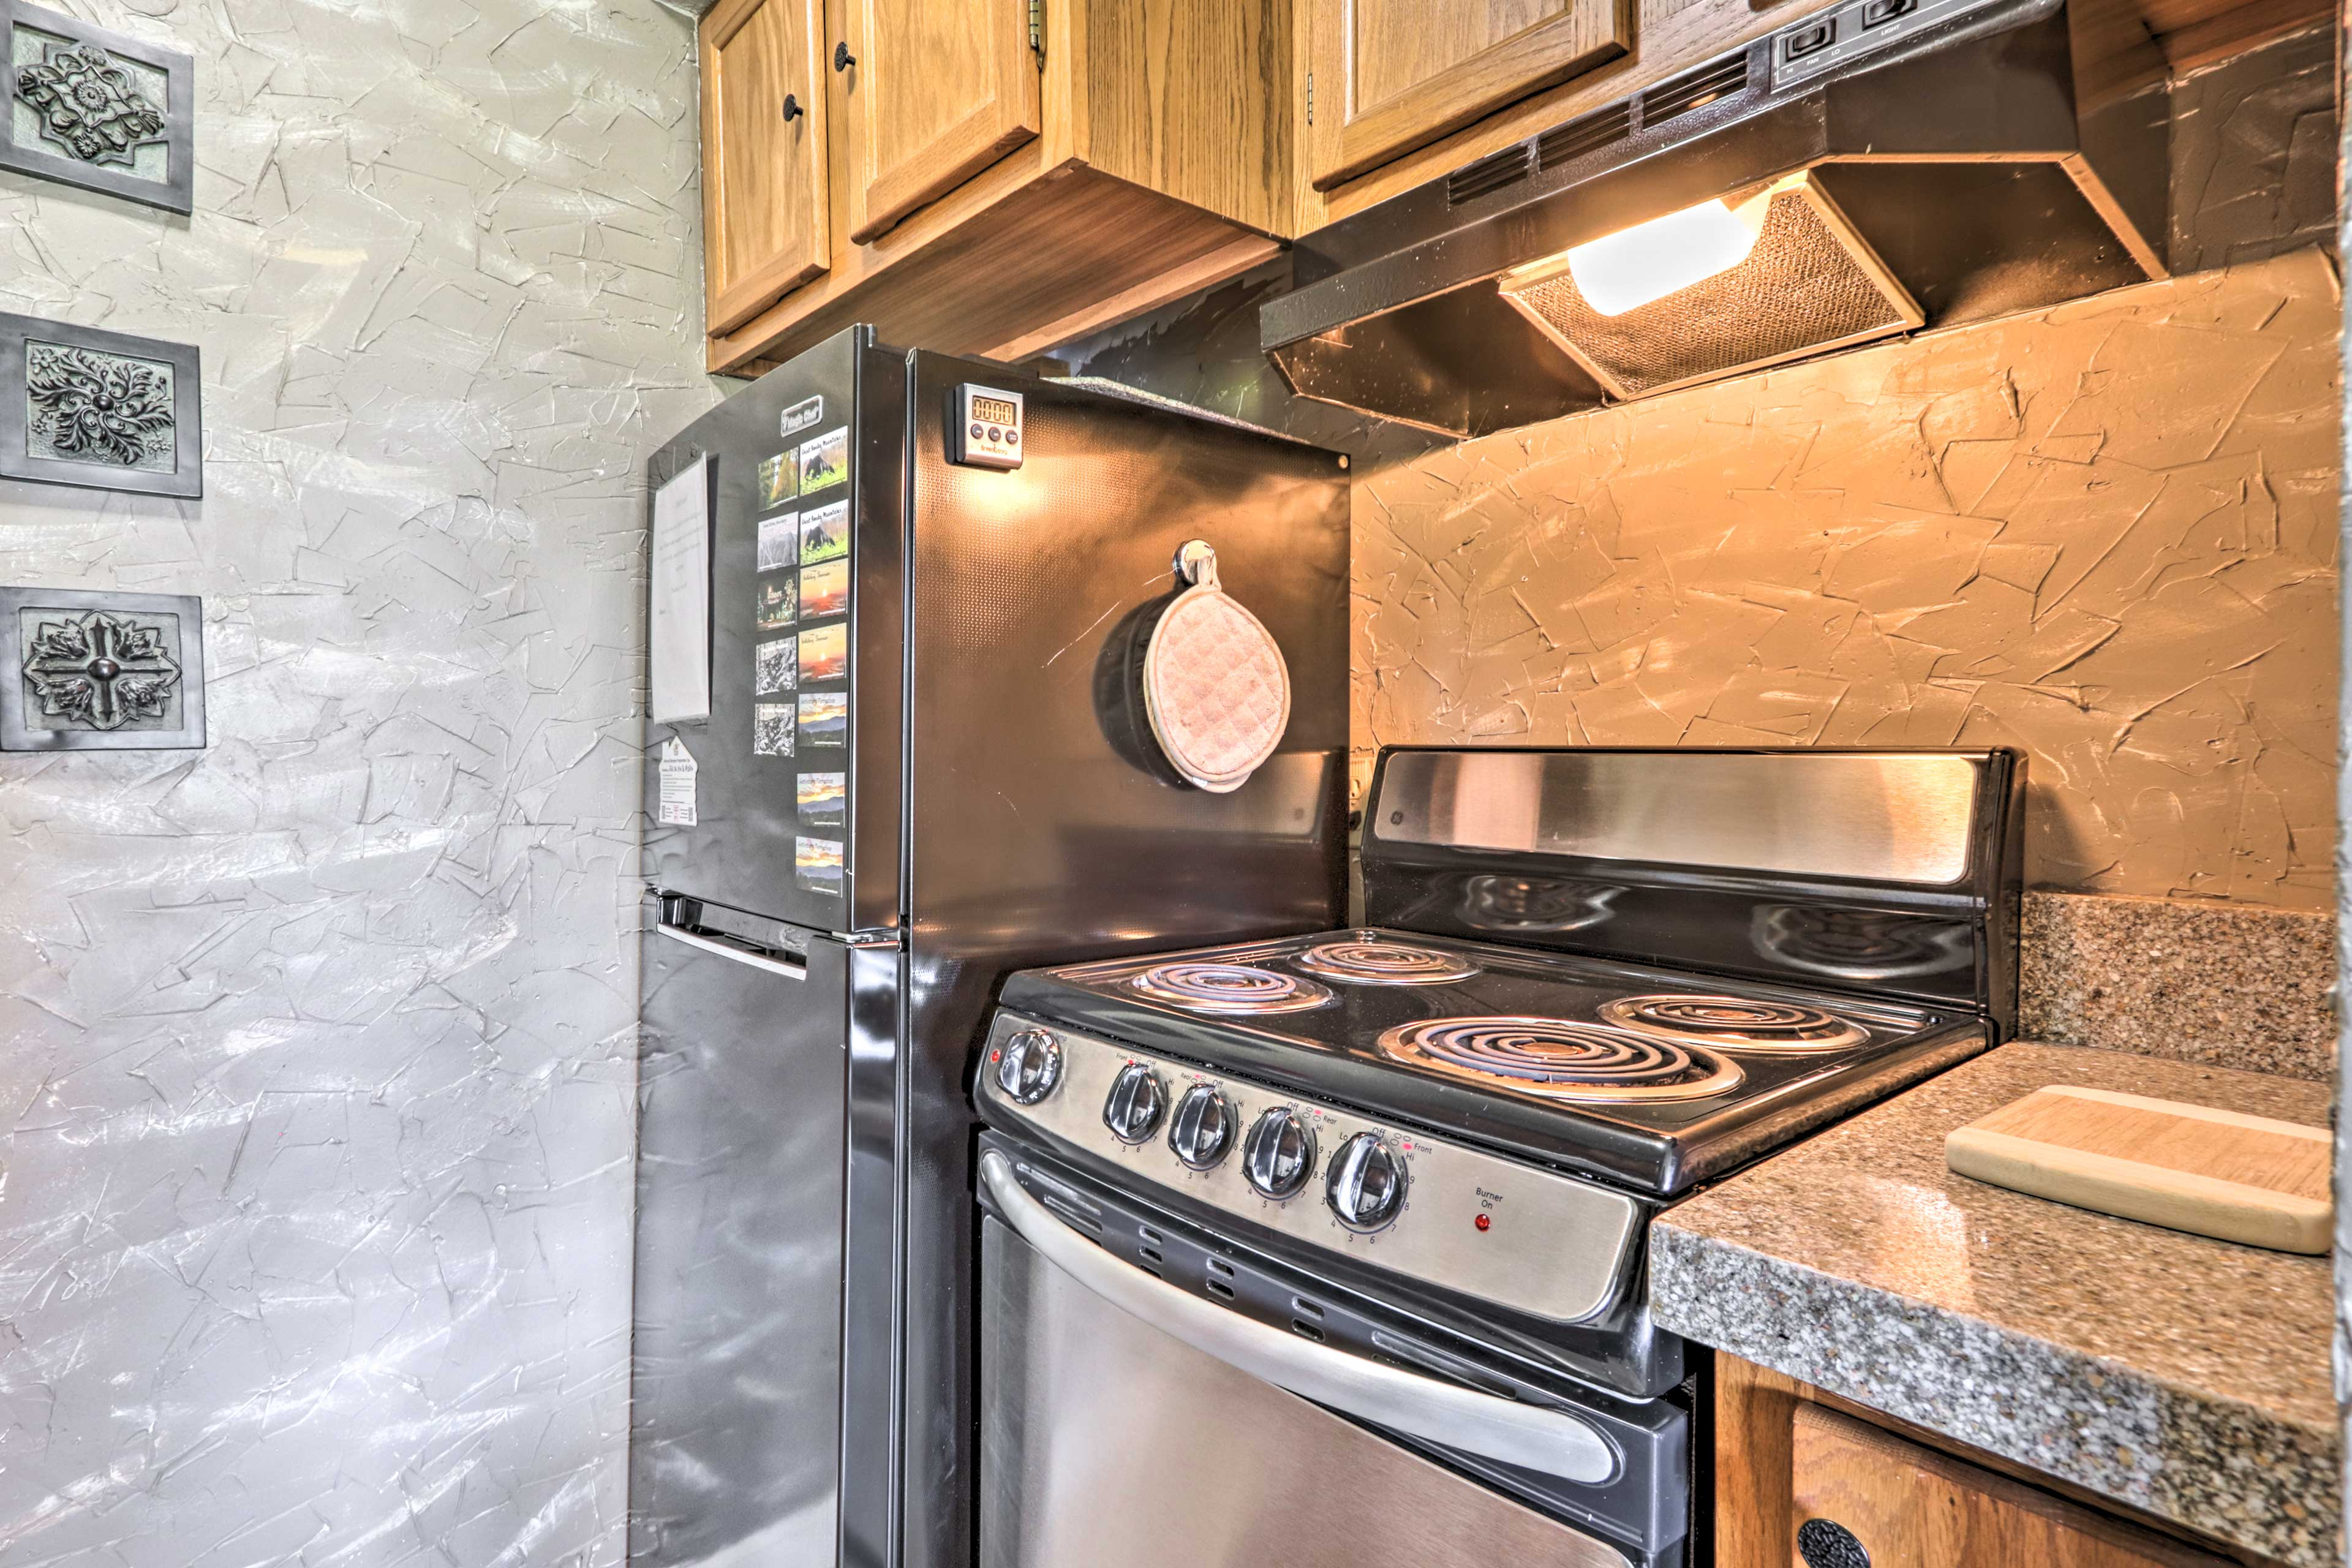 This kitchen comes fully equipped with a dishwasher and stove.